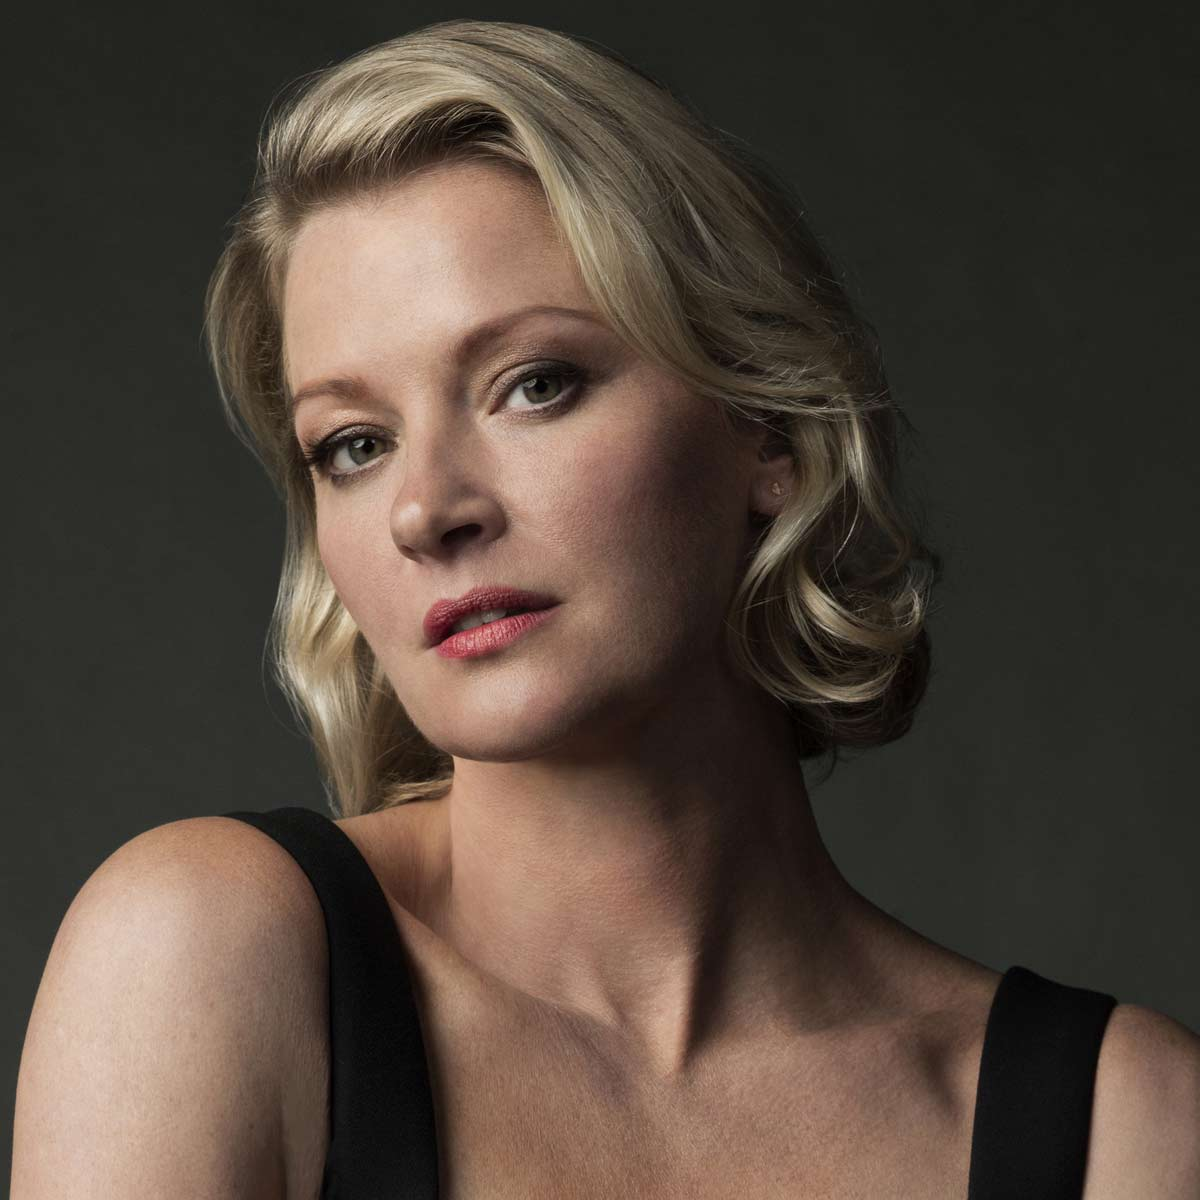 gretchen mol - Syfy Gives a Series Order to Nightflyers Based on George R.R. Martin's Novella